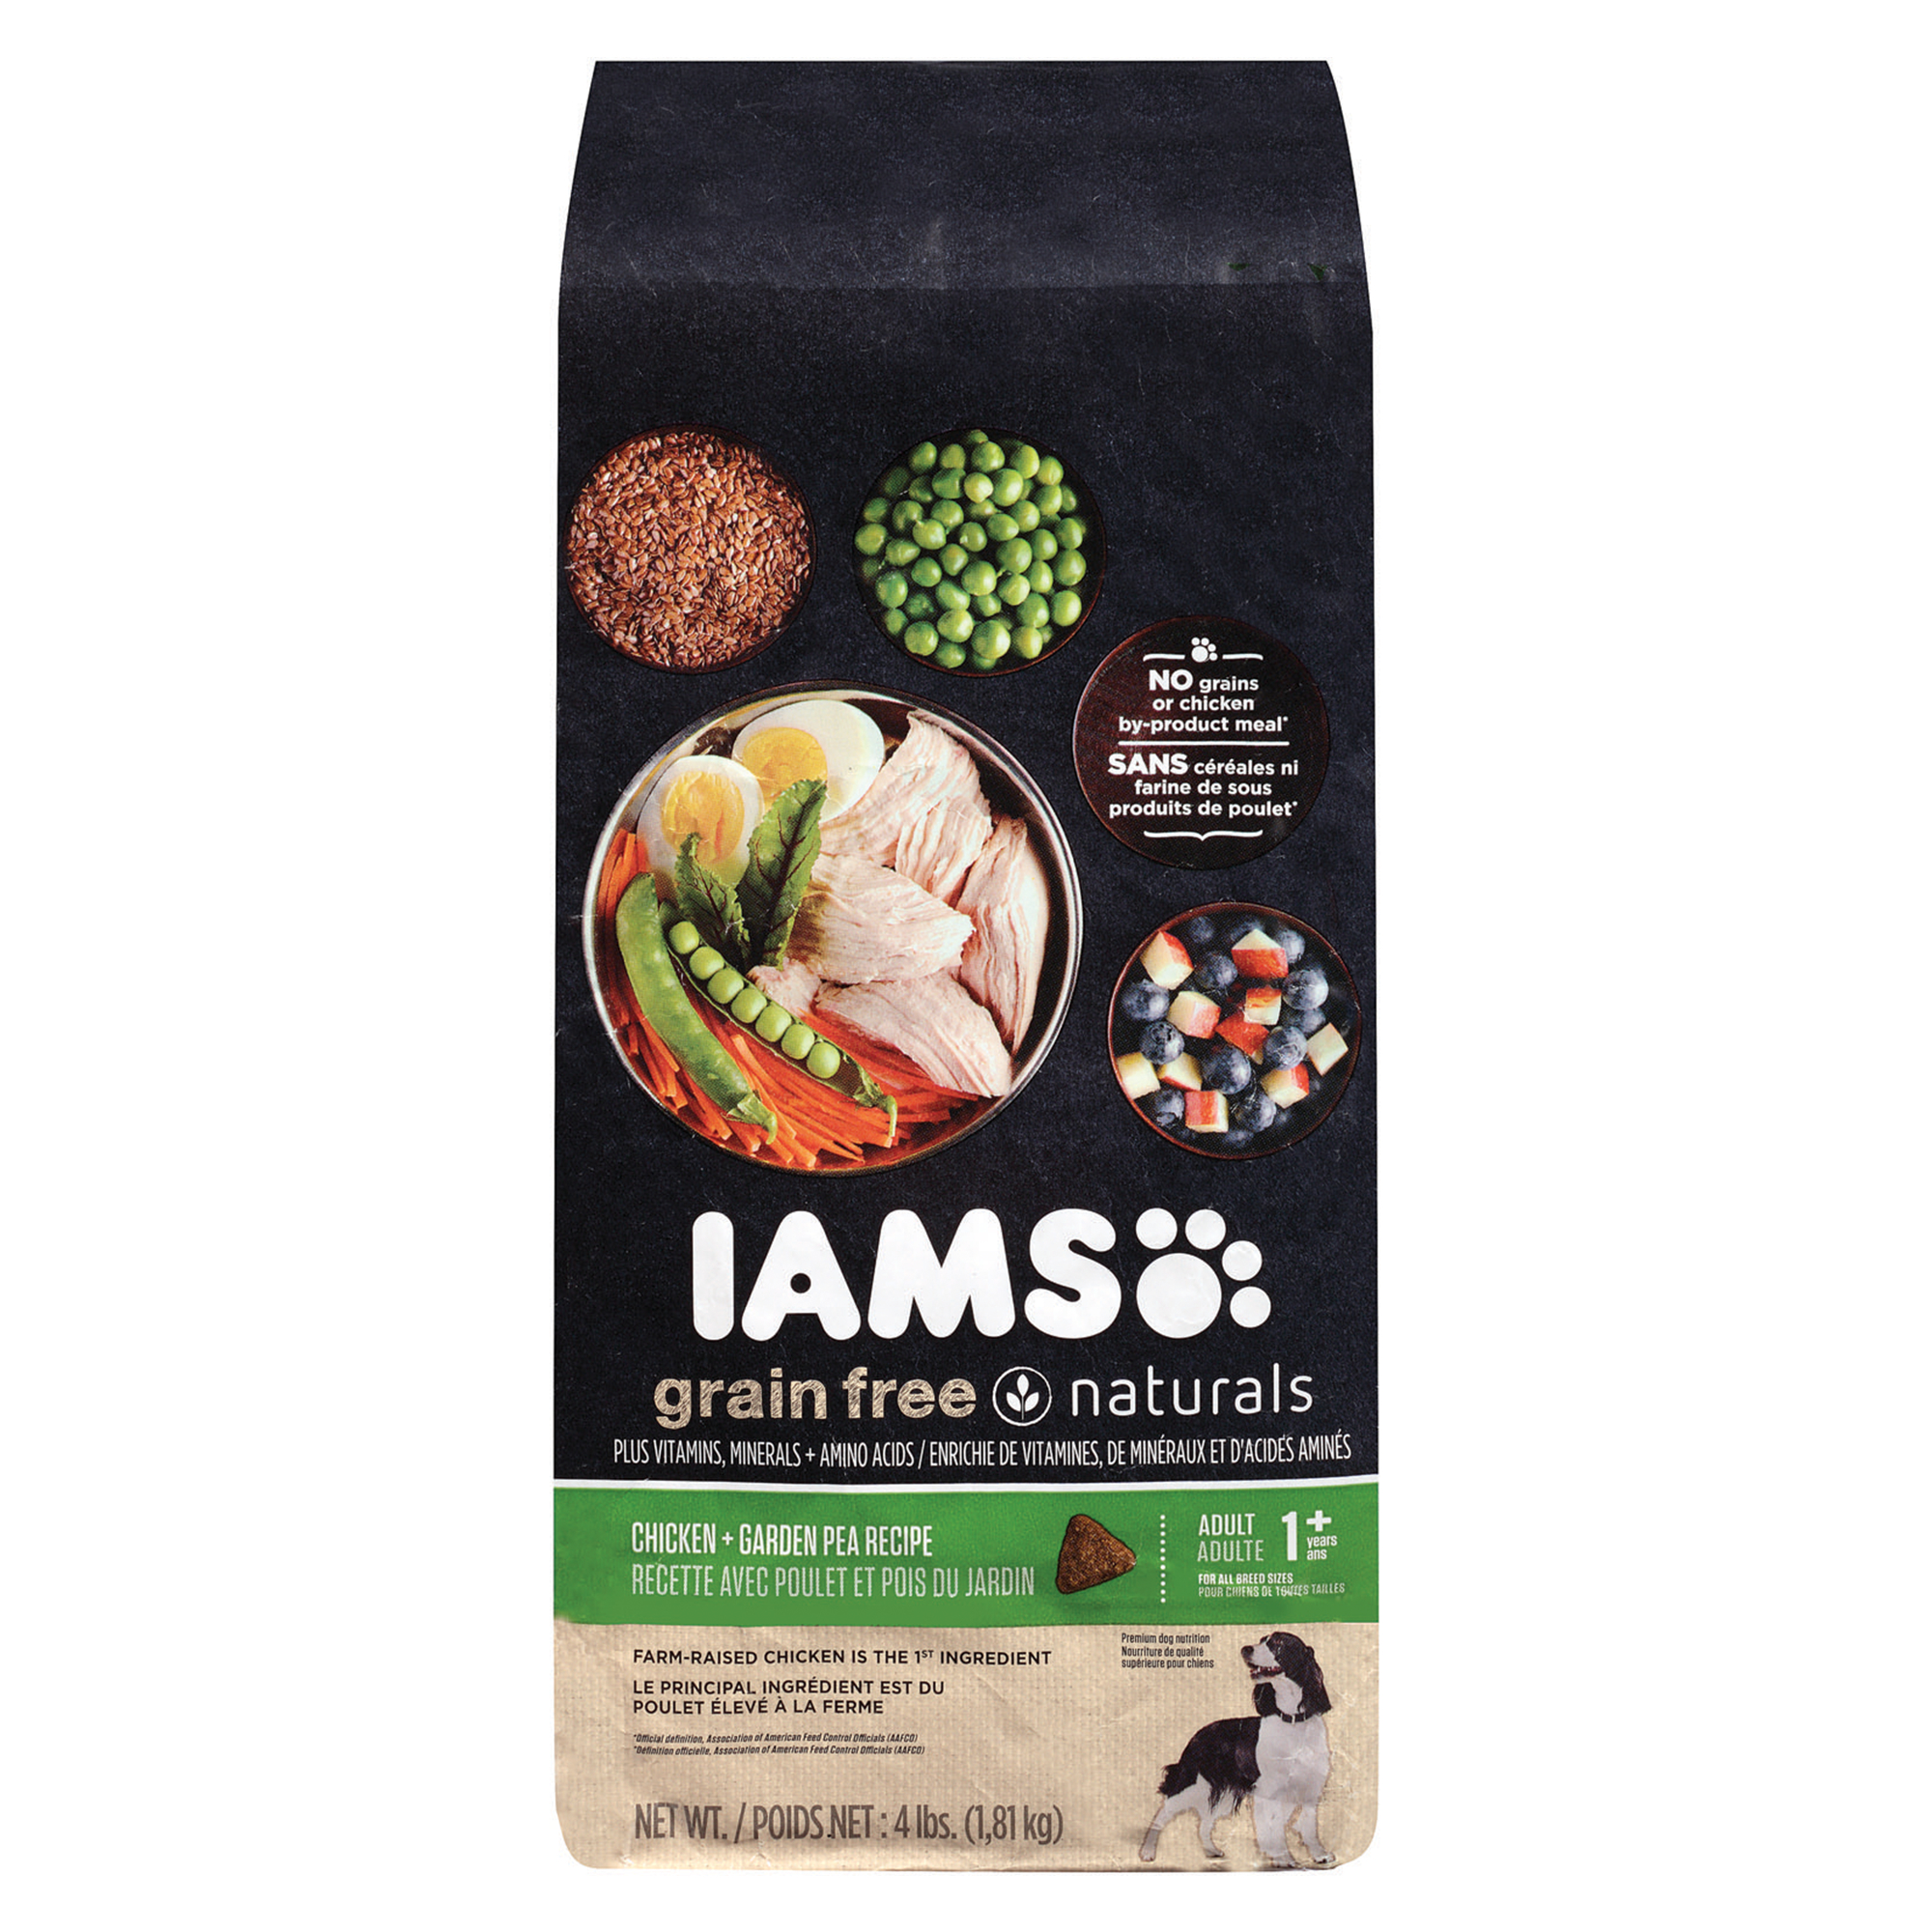 IAMS GRAIN FREE NATURALS Adult Chicken and Garden Pea Recipe Dry Dog Food 4 Pounds